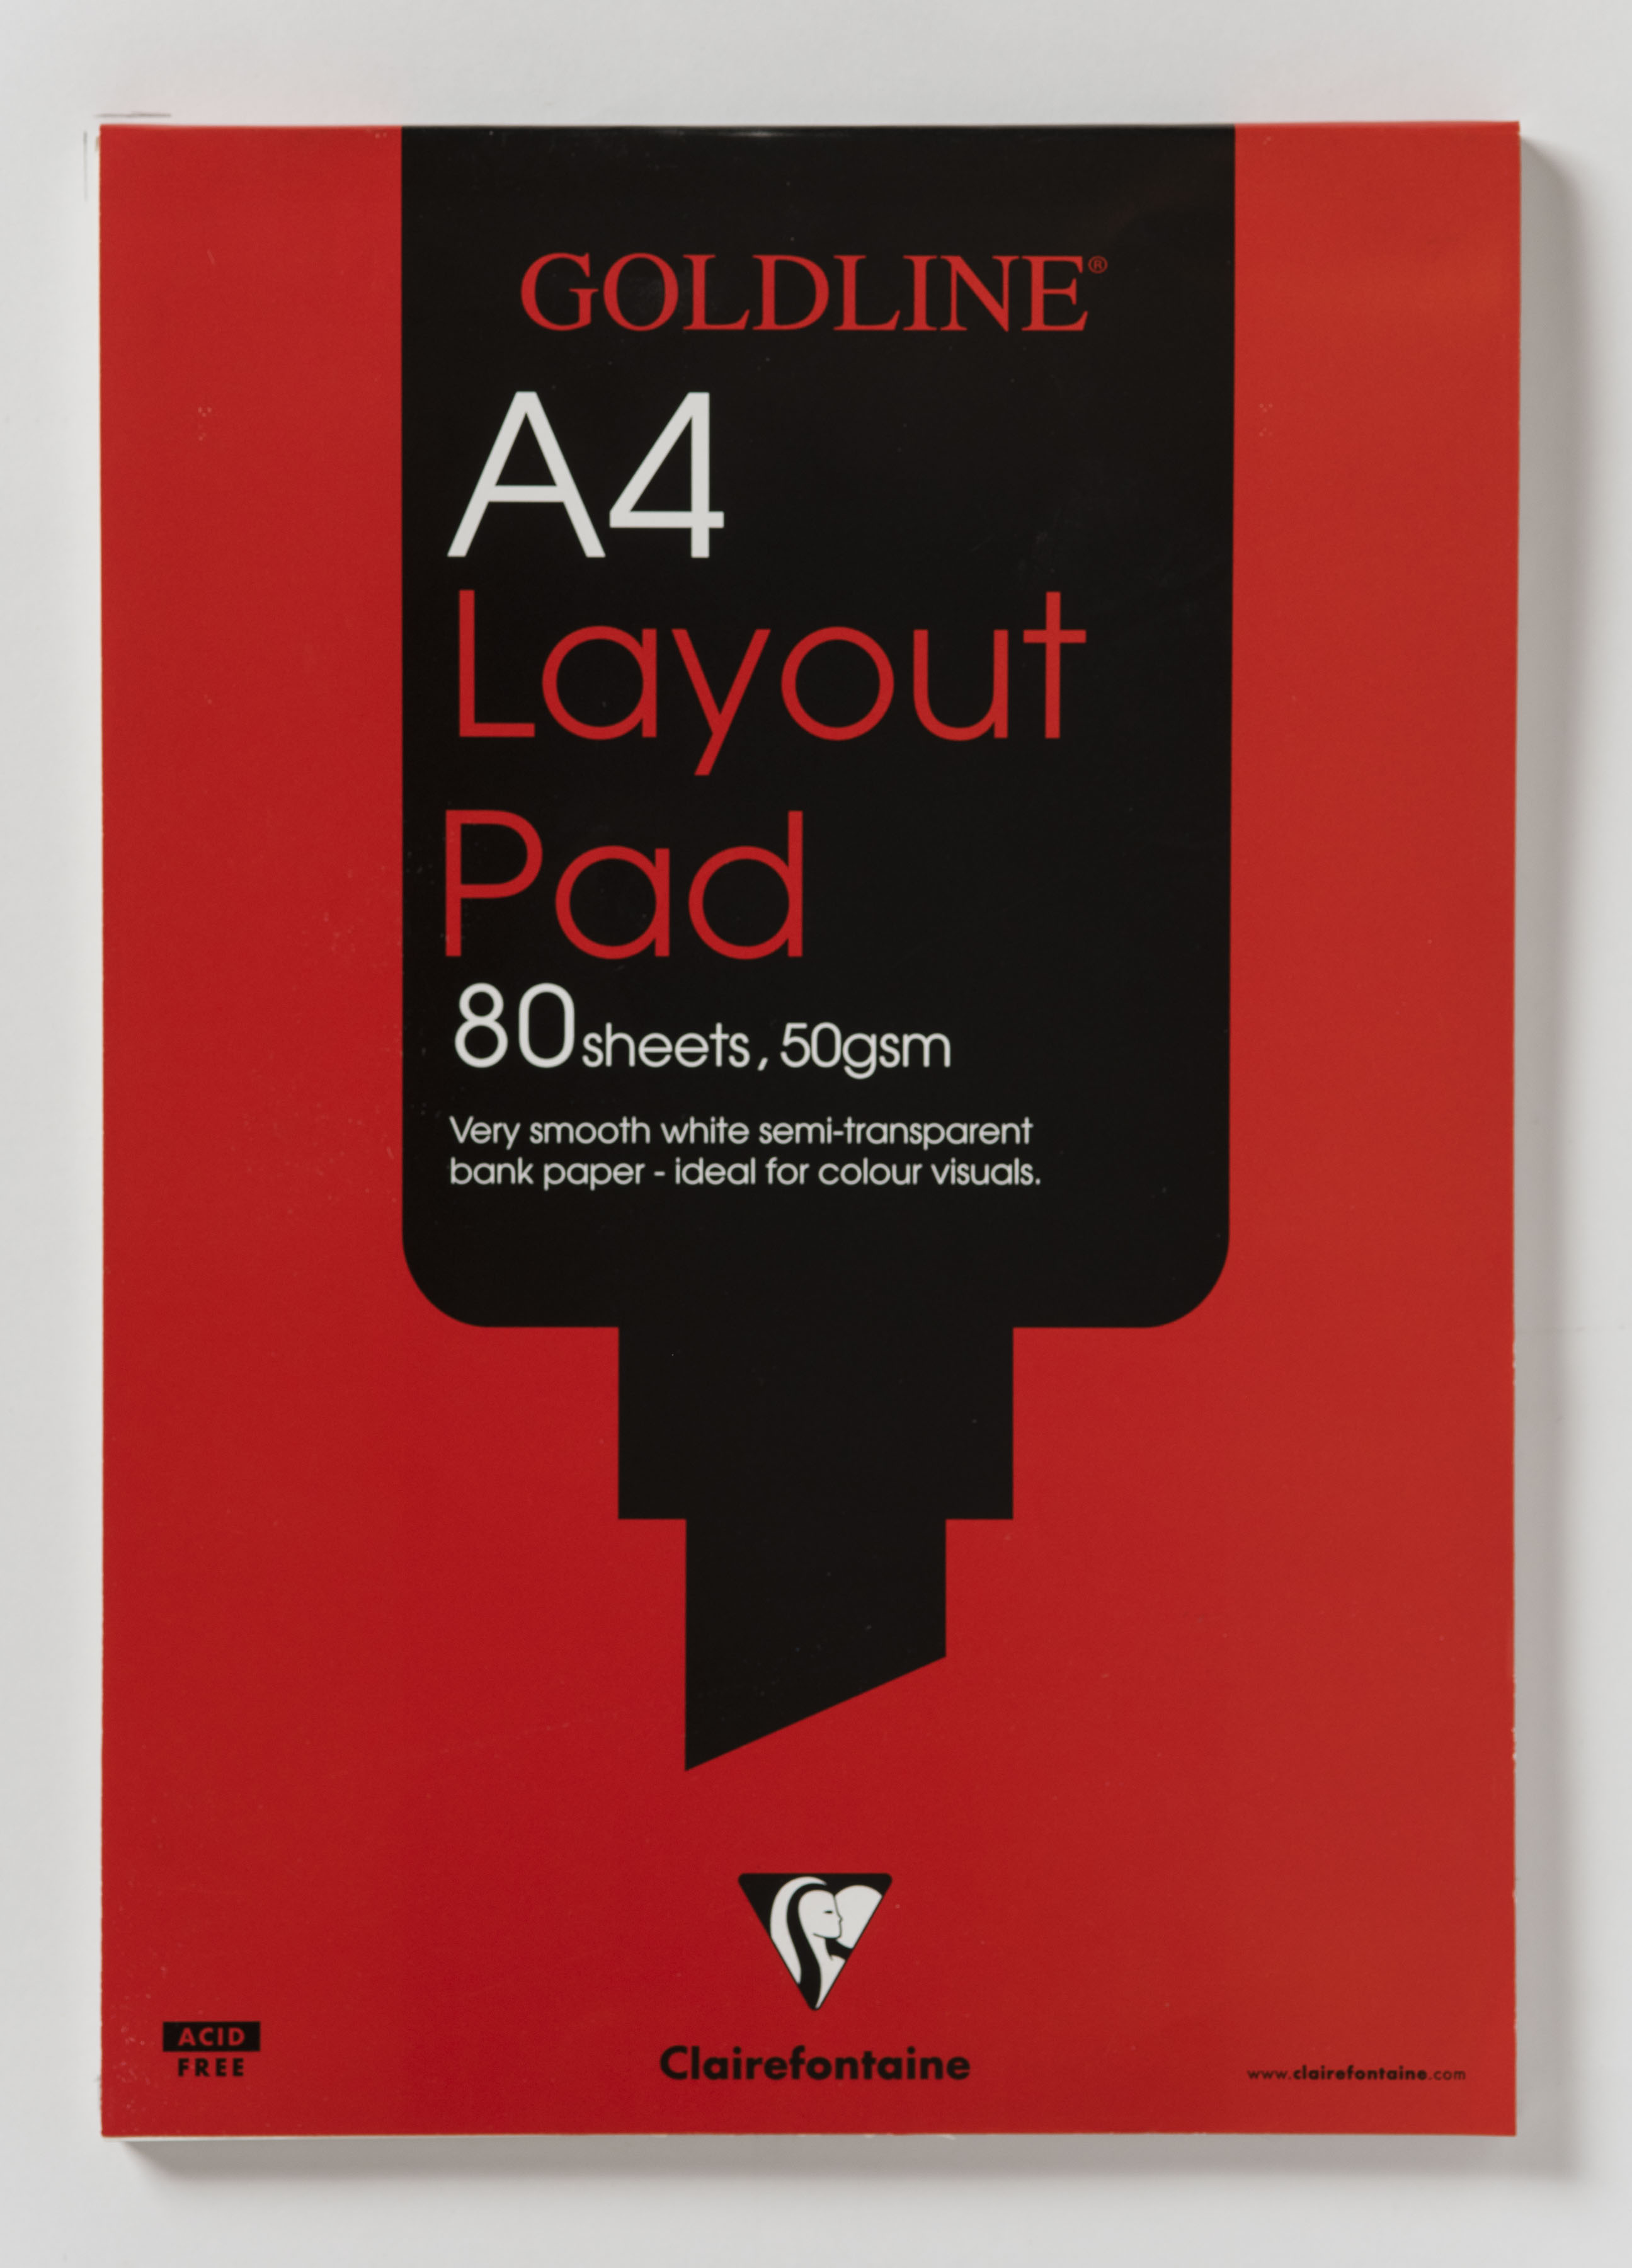 GDline Layout Pad A4